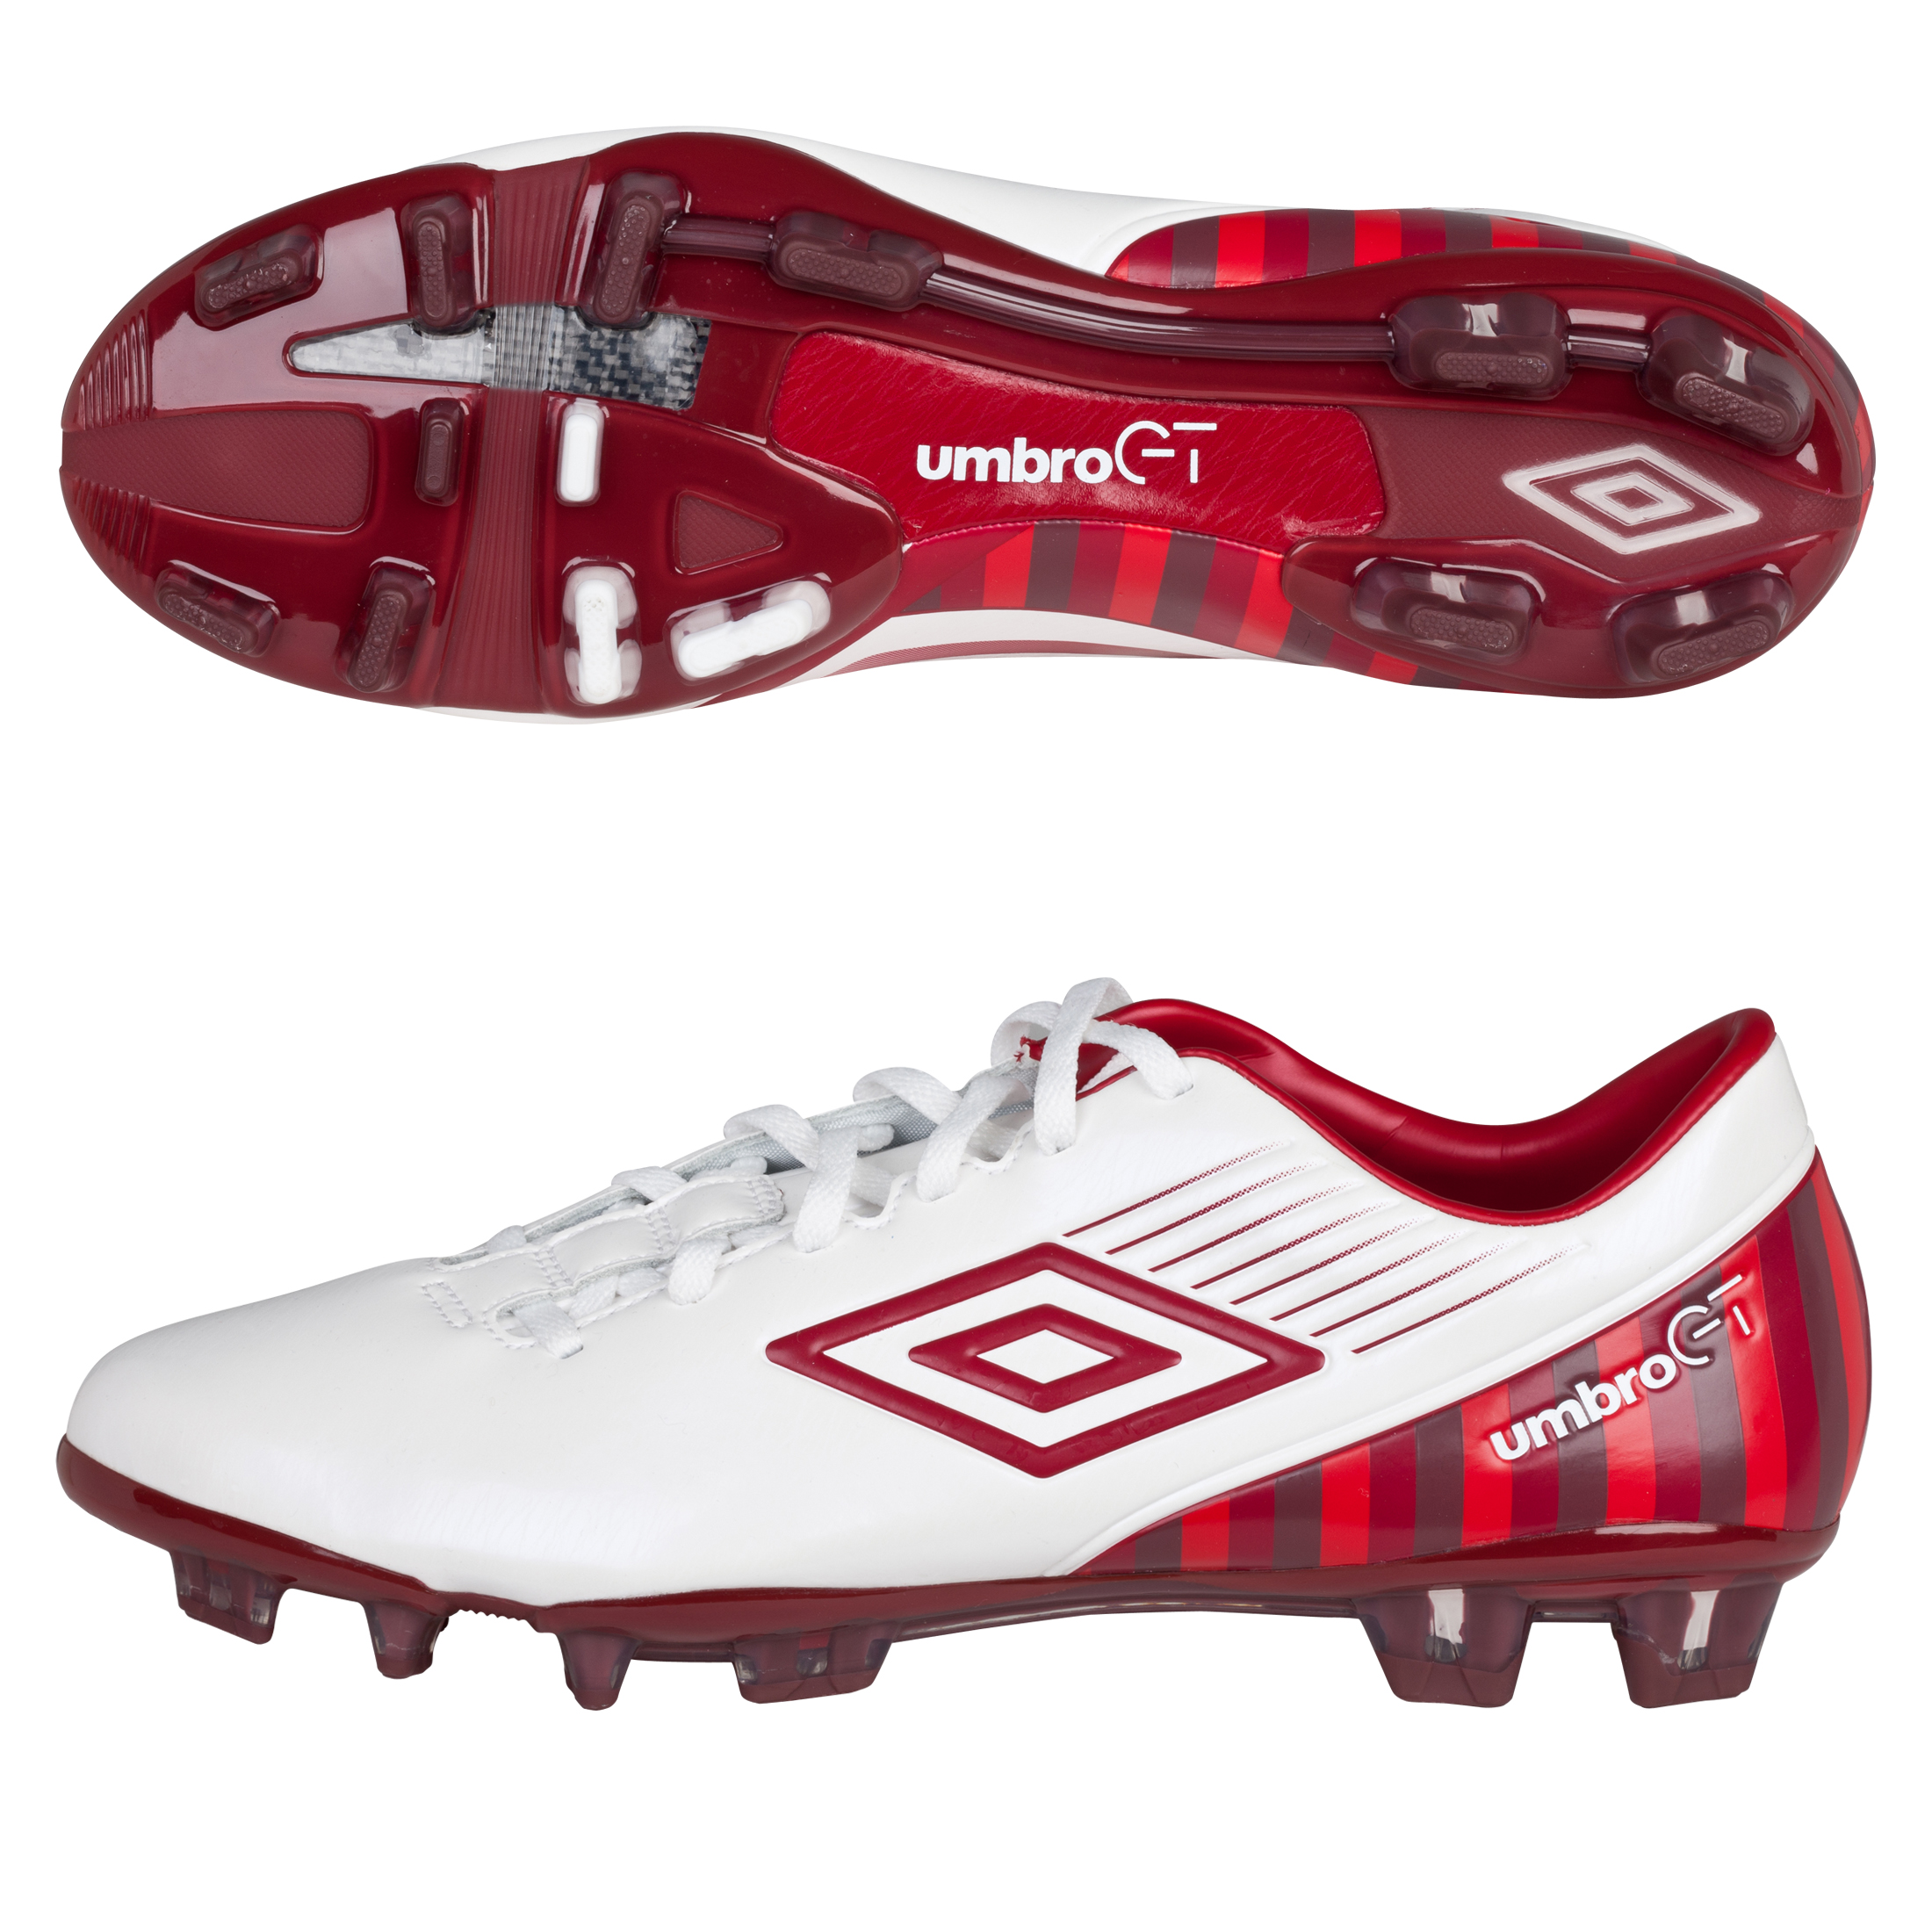 Gt 2 Pro 2012 FG White / Vermillion / Dark Vermillion / Deep Claret